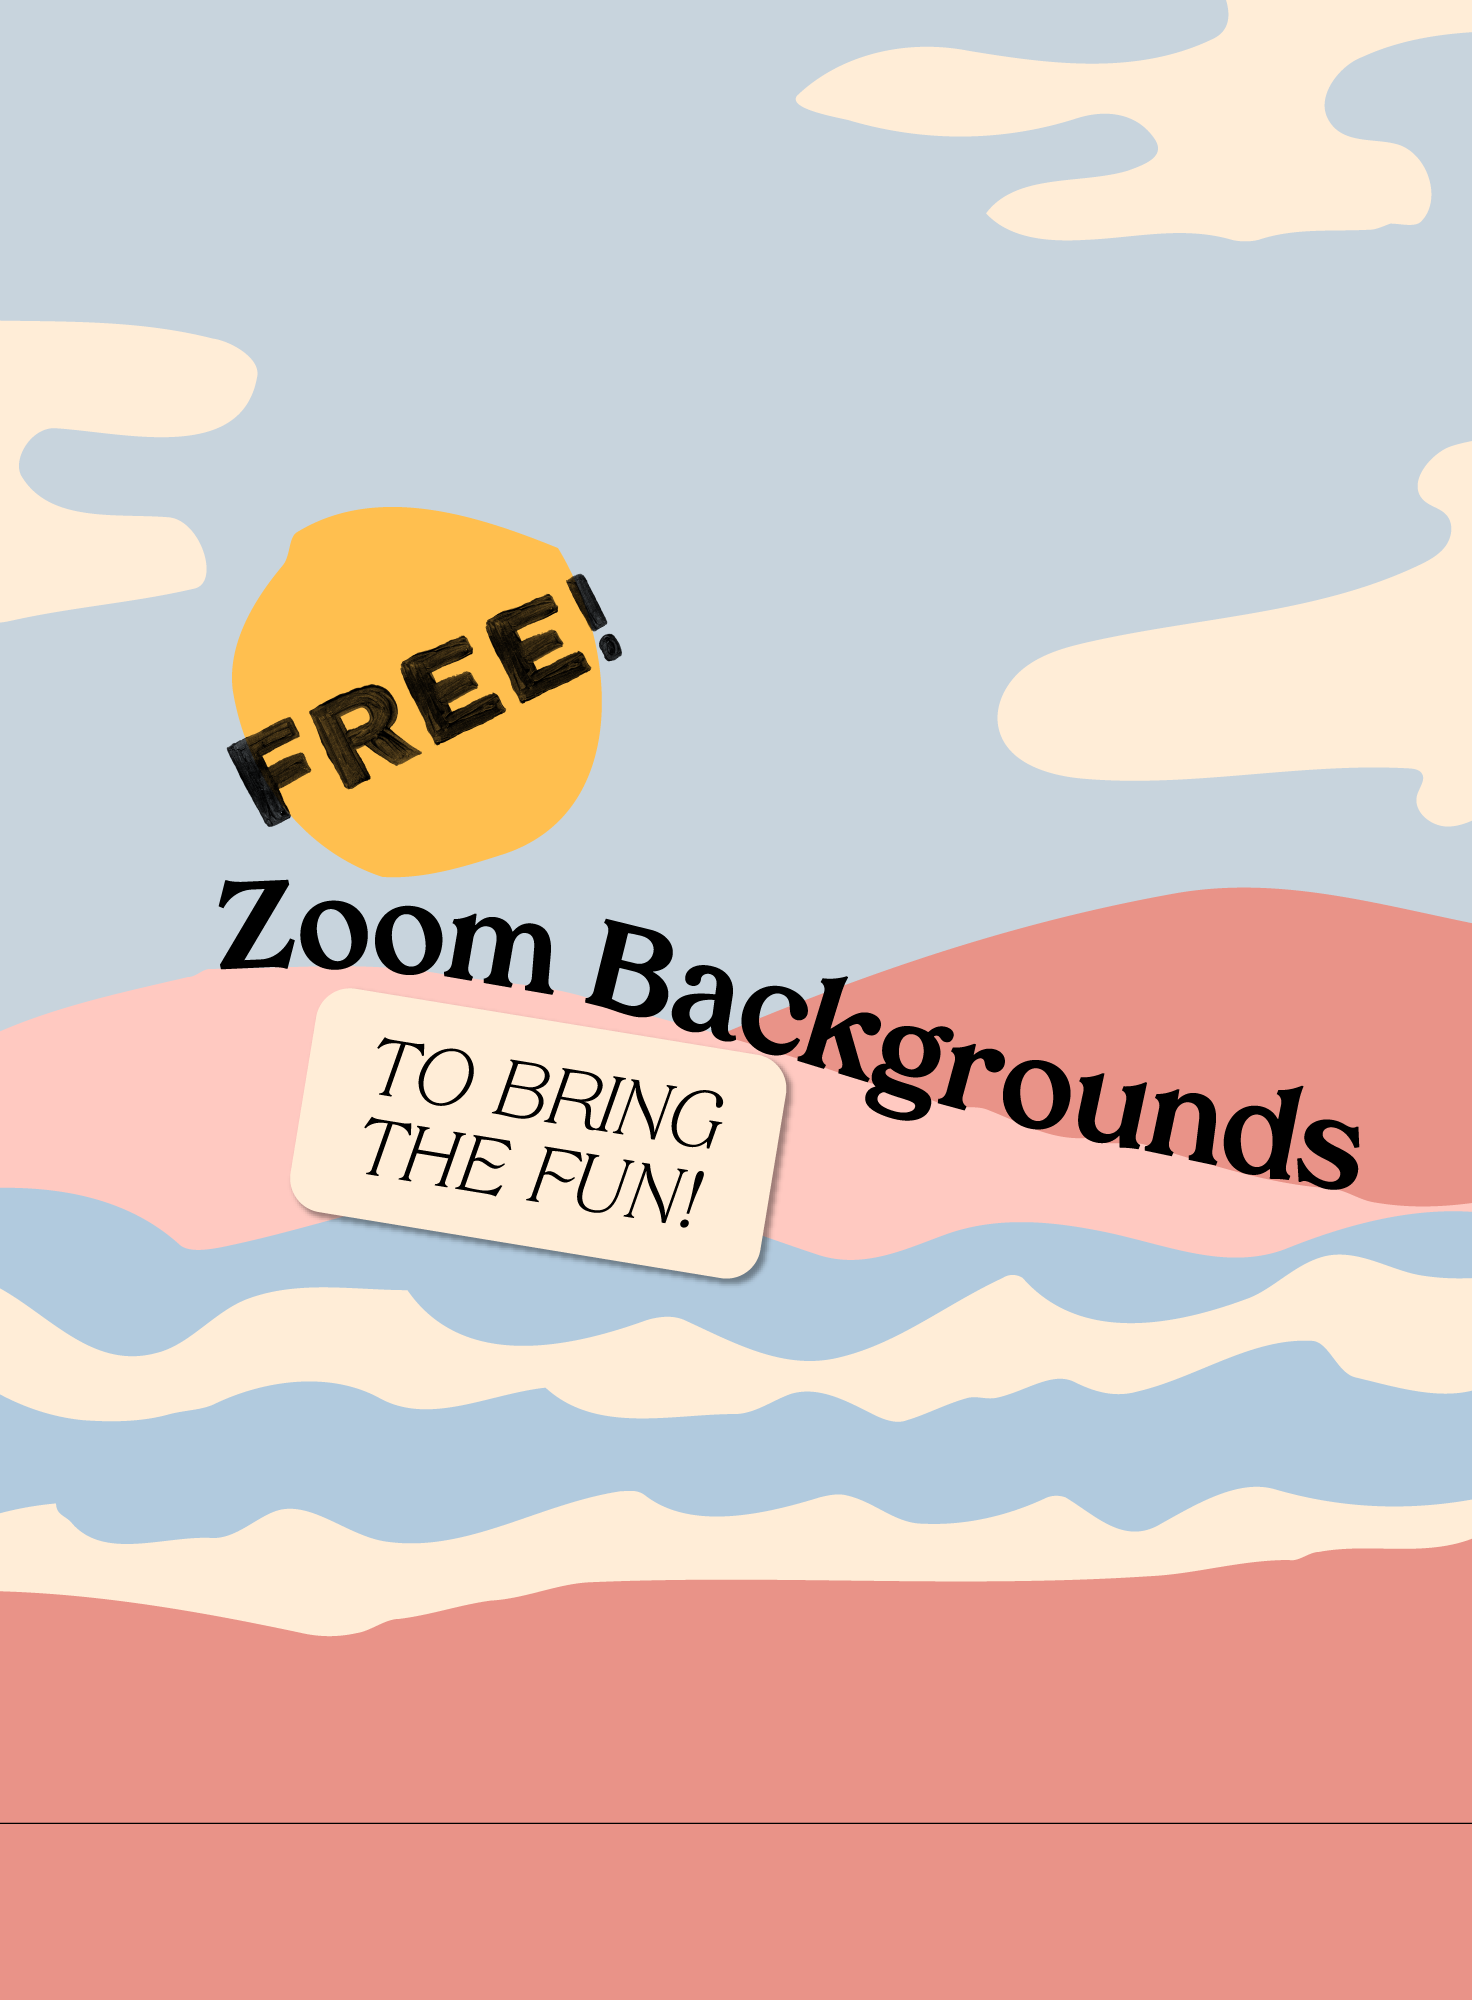 Free Zoom Virtual Background Graphics To Bring The Fun In 2020 Zoom Call Blog Marketing Free Blogging Courses